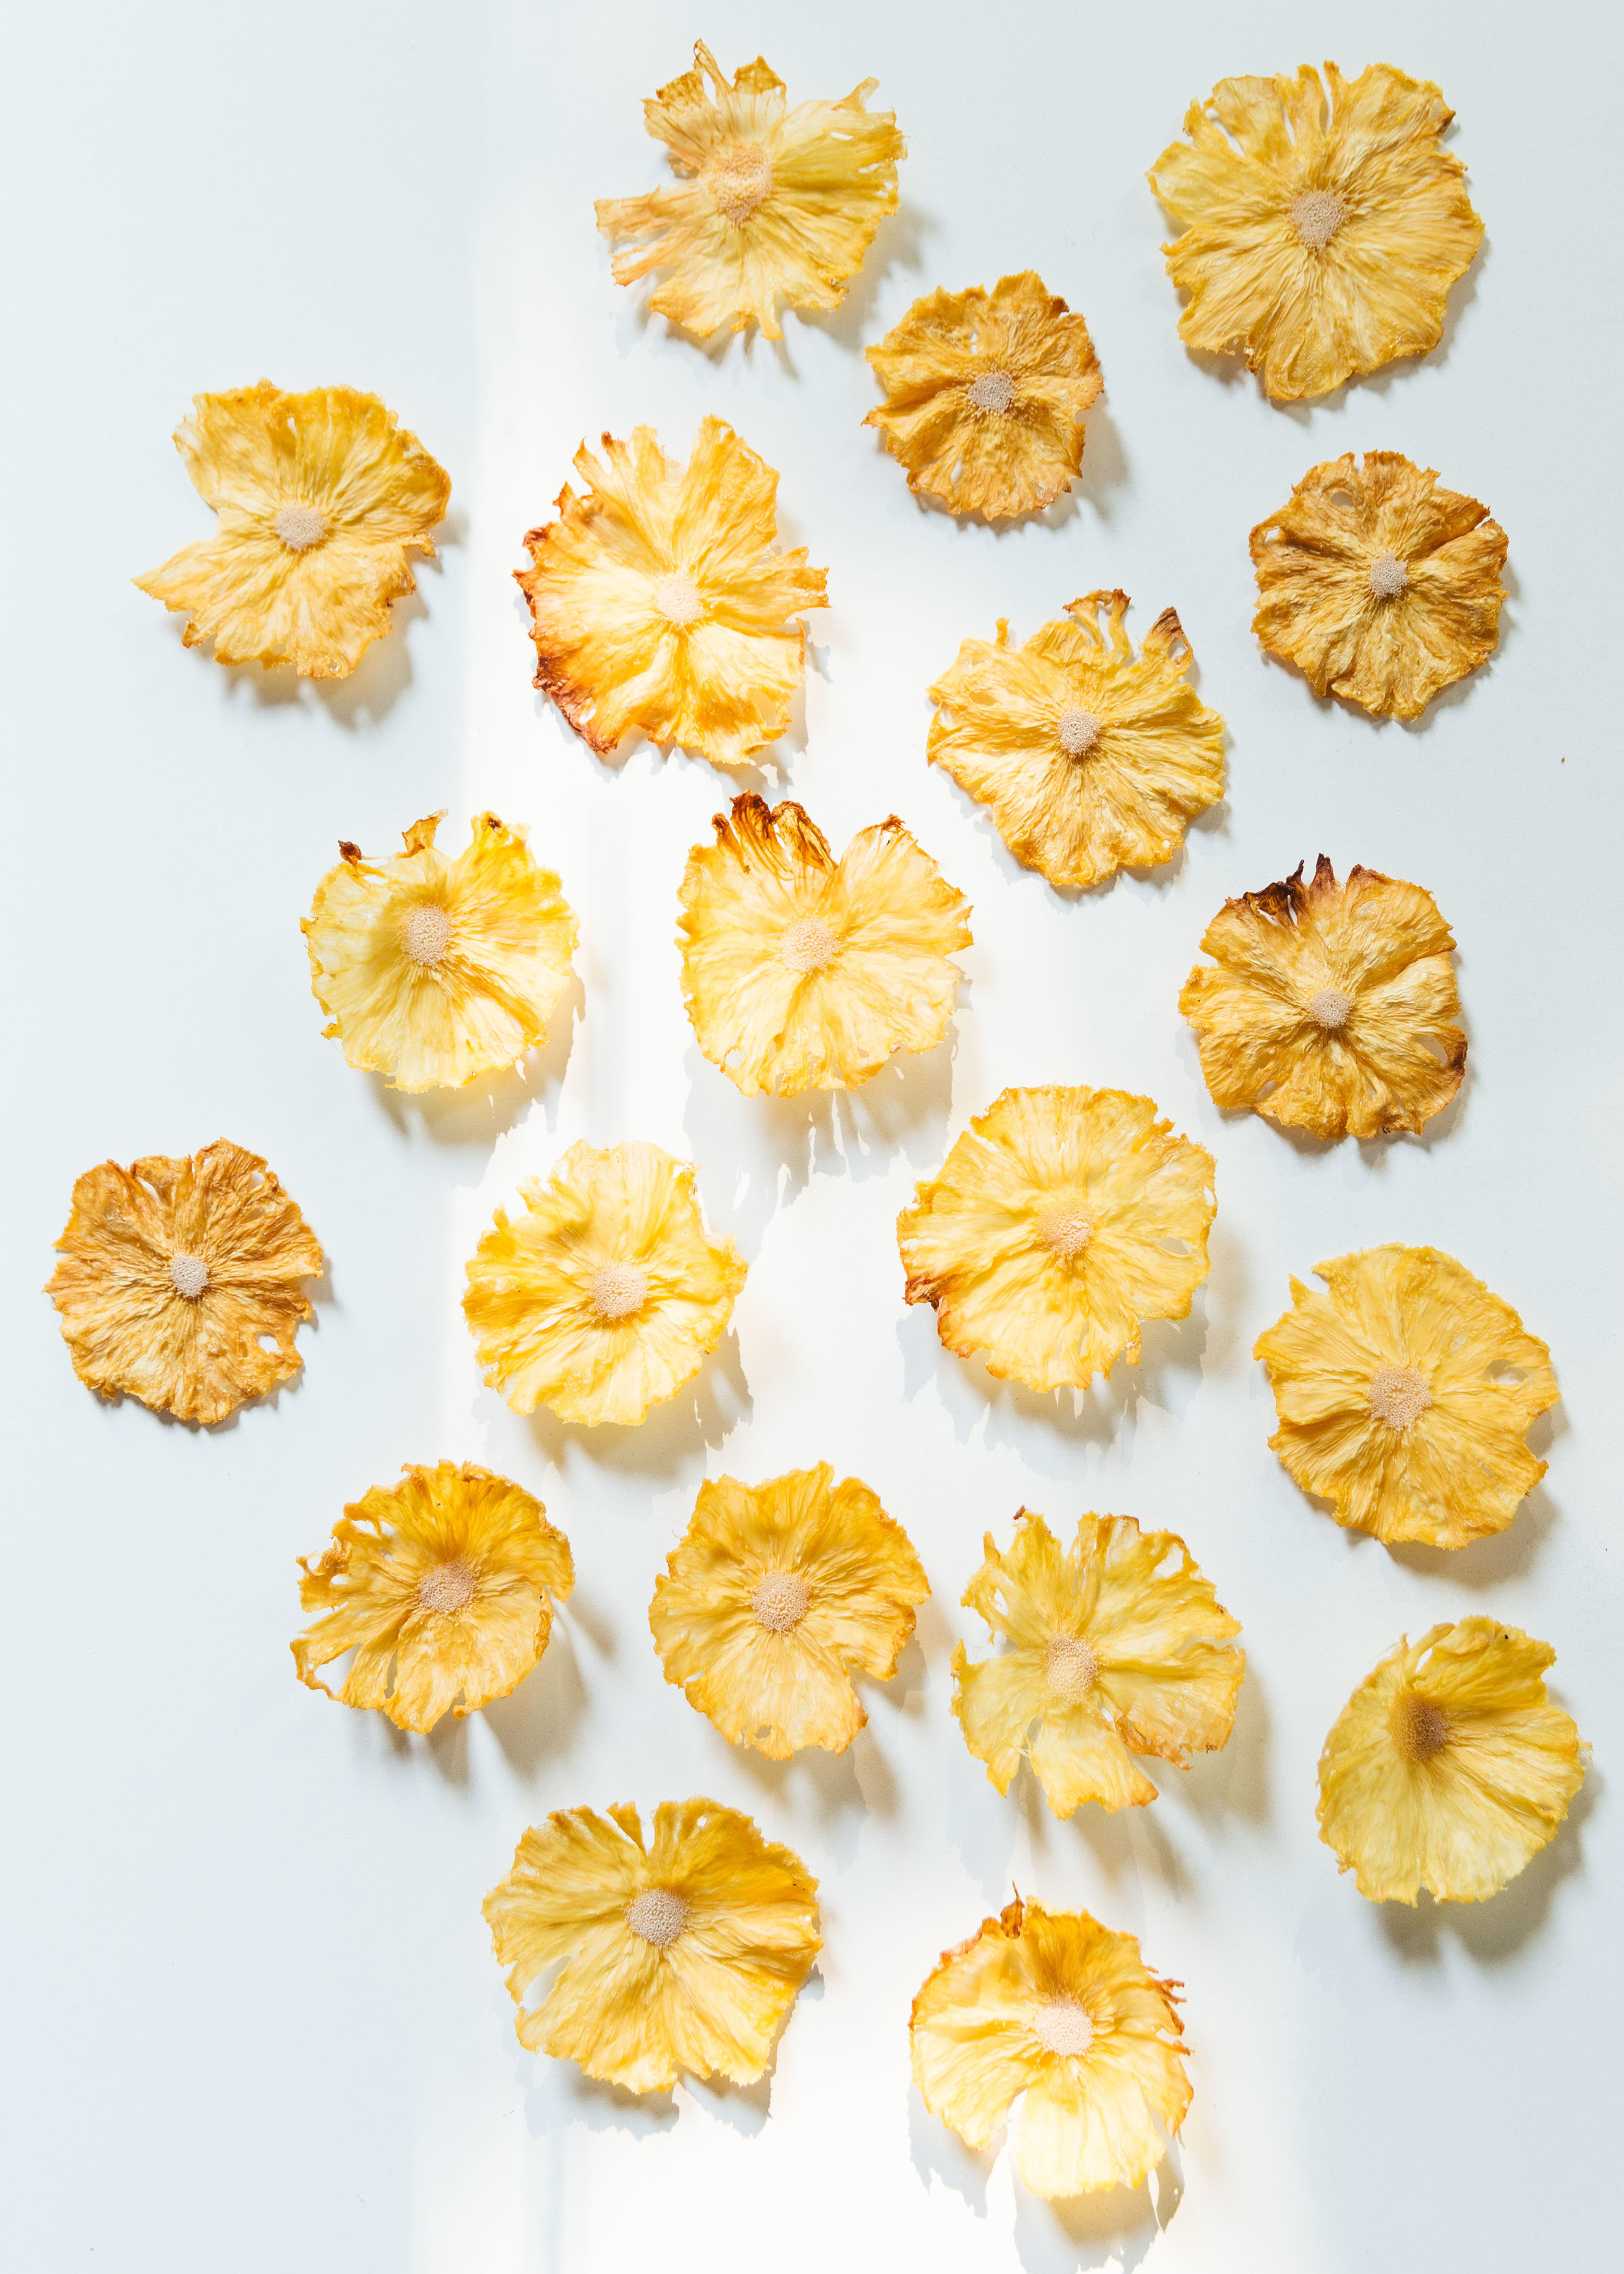 dried pineapple flowers in afternoon light